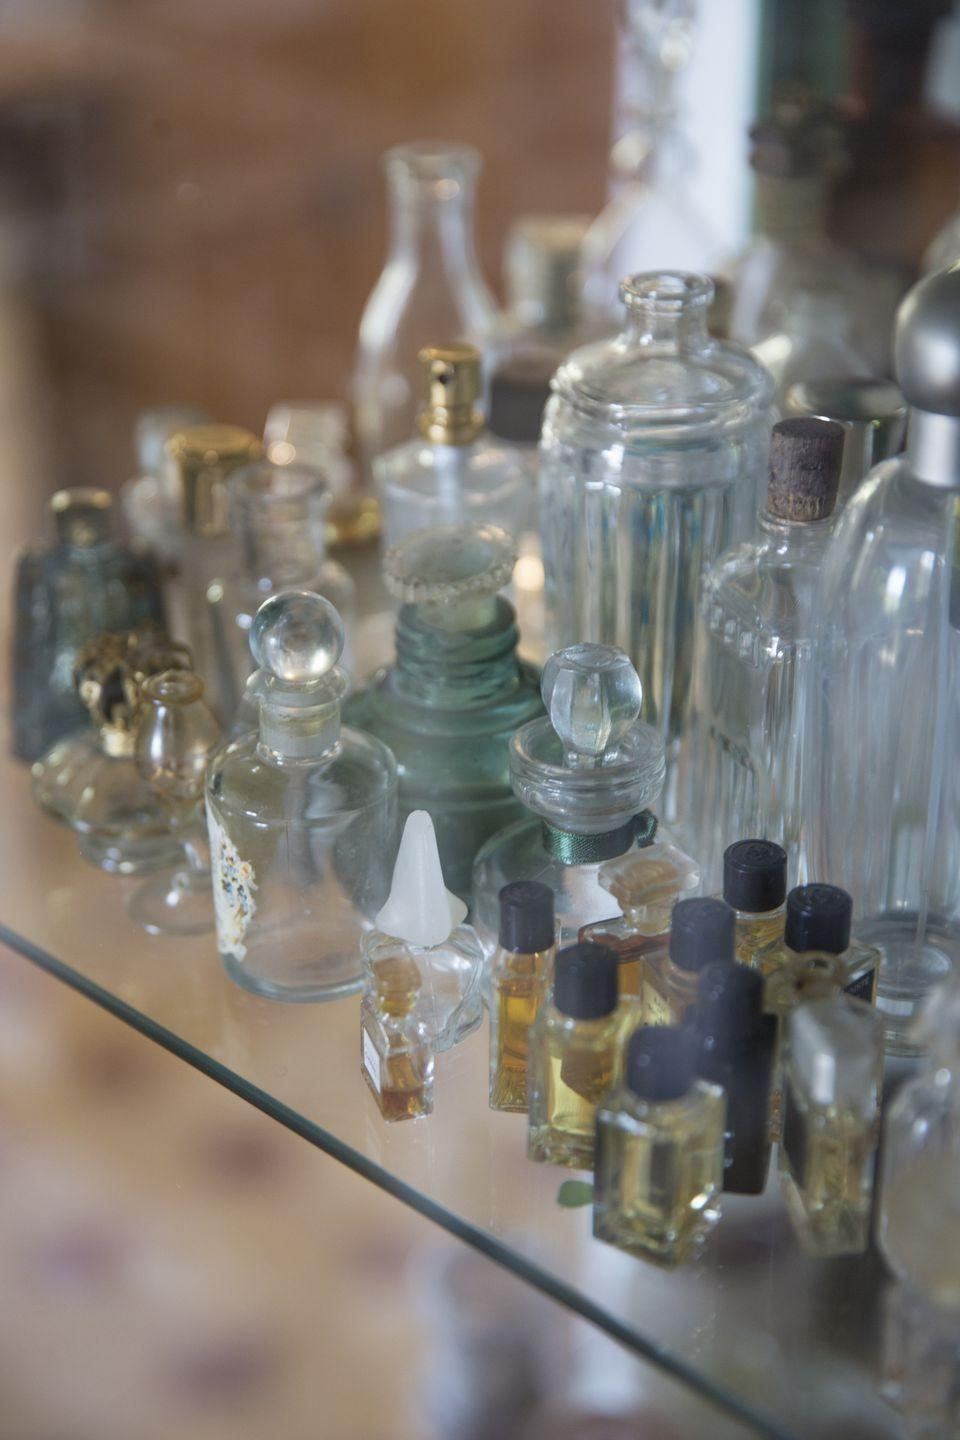 "<p>There are entire auctions dedicated to these prized pieces of glass. When browsing garage sales, look out for those in mint condition, with their original packaging—and the older, the better. One of the more collectible examples, Lalique 's ""Les Sirenes"" Flacon Collection Perfume bottle, is <a href=""https://worthly.com/most-expensive/perfume-bottles-worth-collecting/"" rel=""nofollow noopener"" target=""_blank"" data-ylk=""slk:worth up to $500."" class=""link rapid-noclick-resp"">worth up to $500.</a></p>"